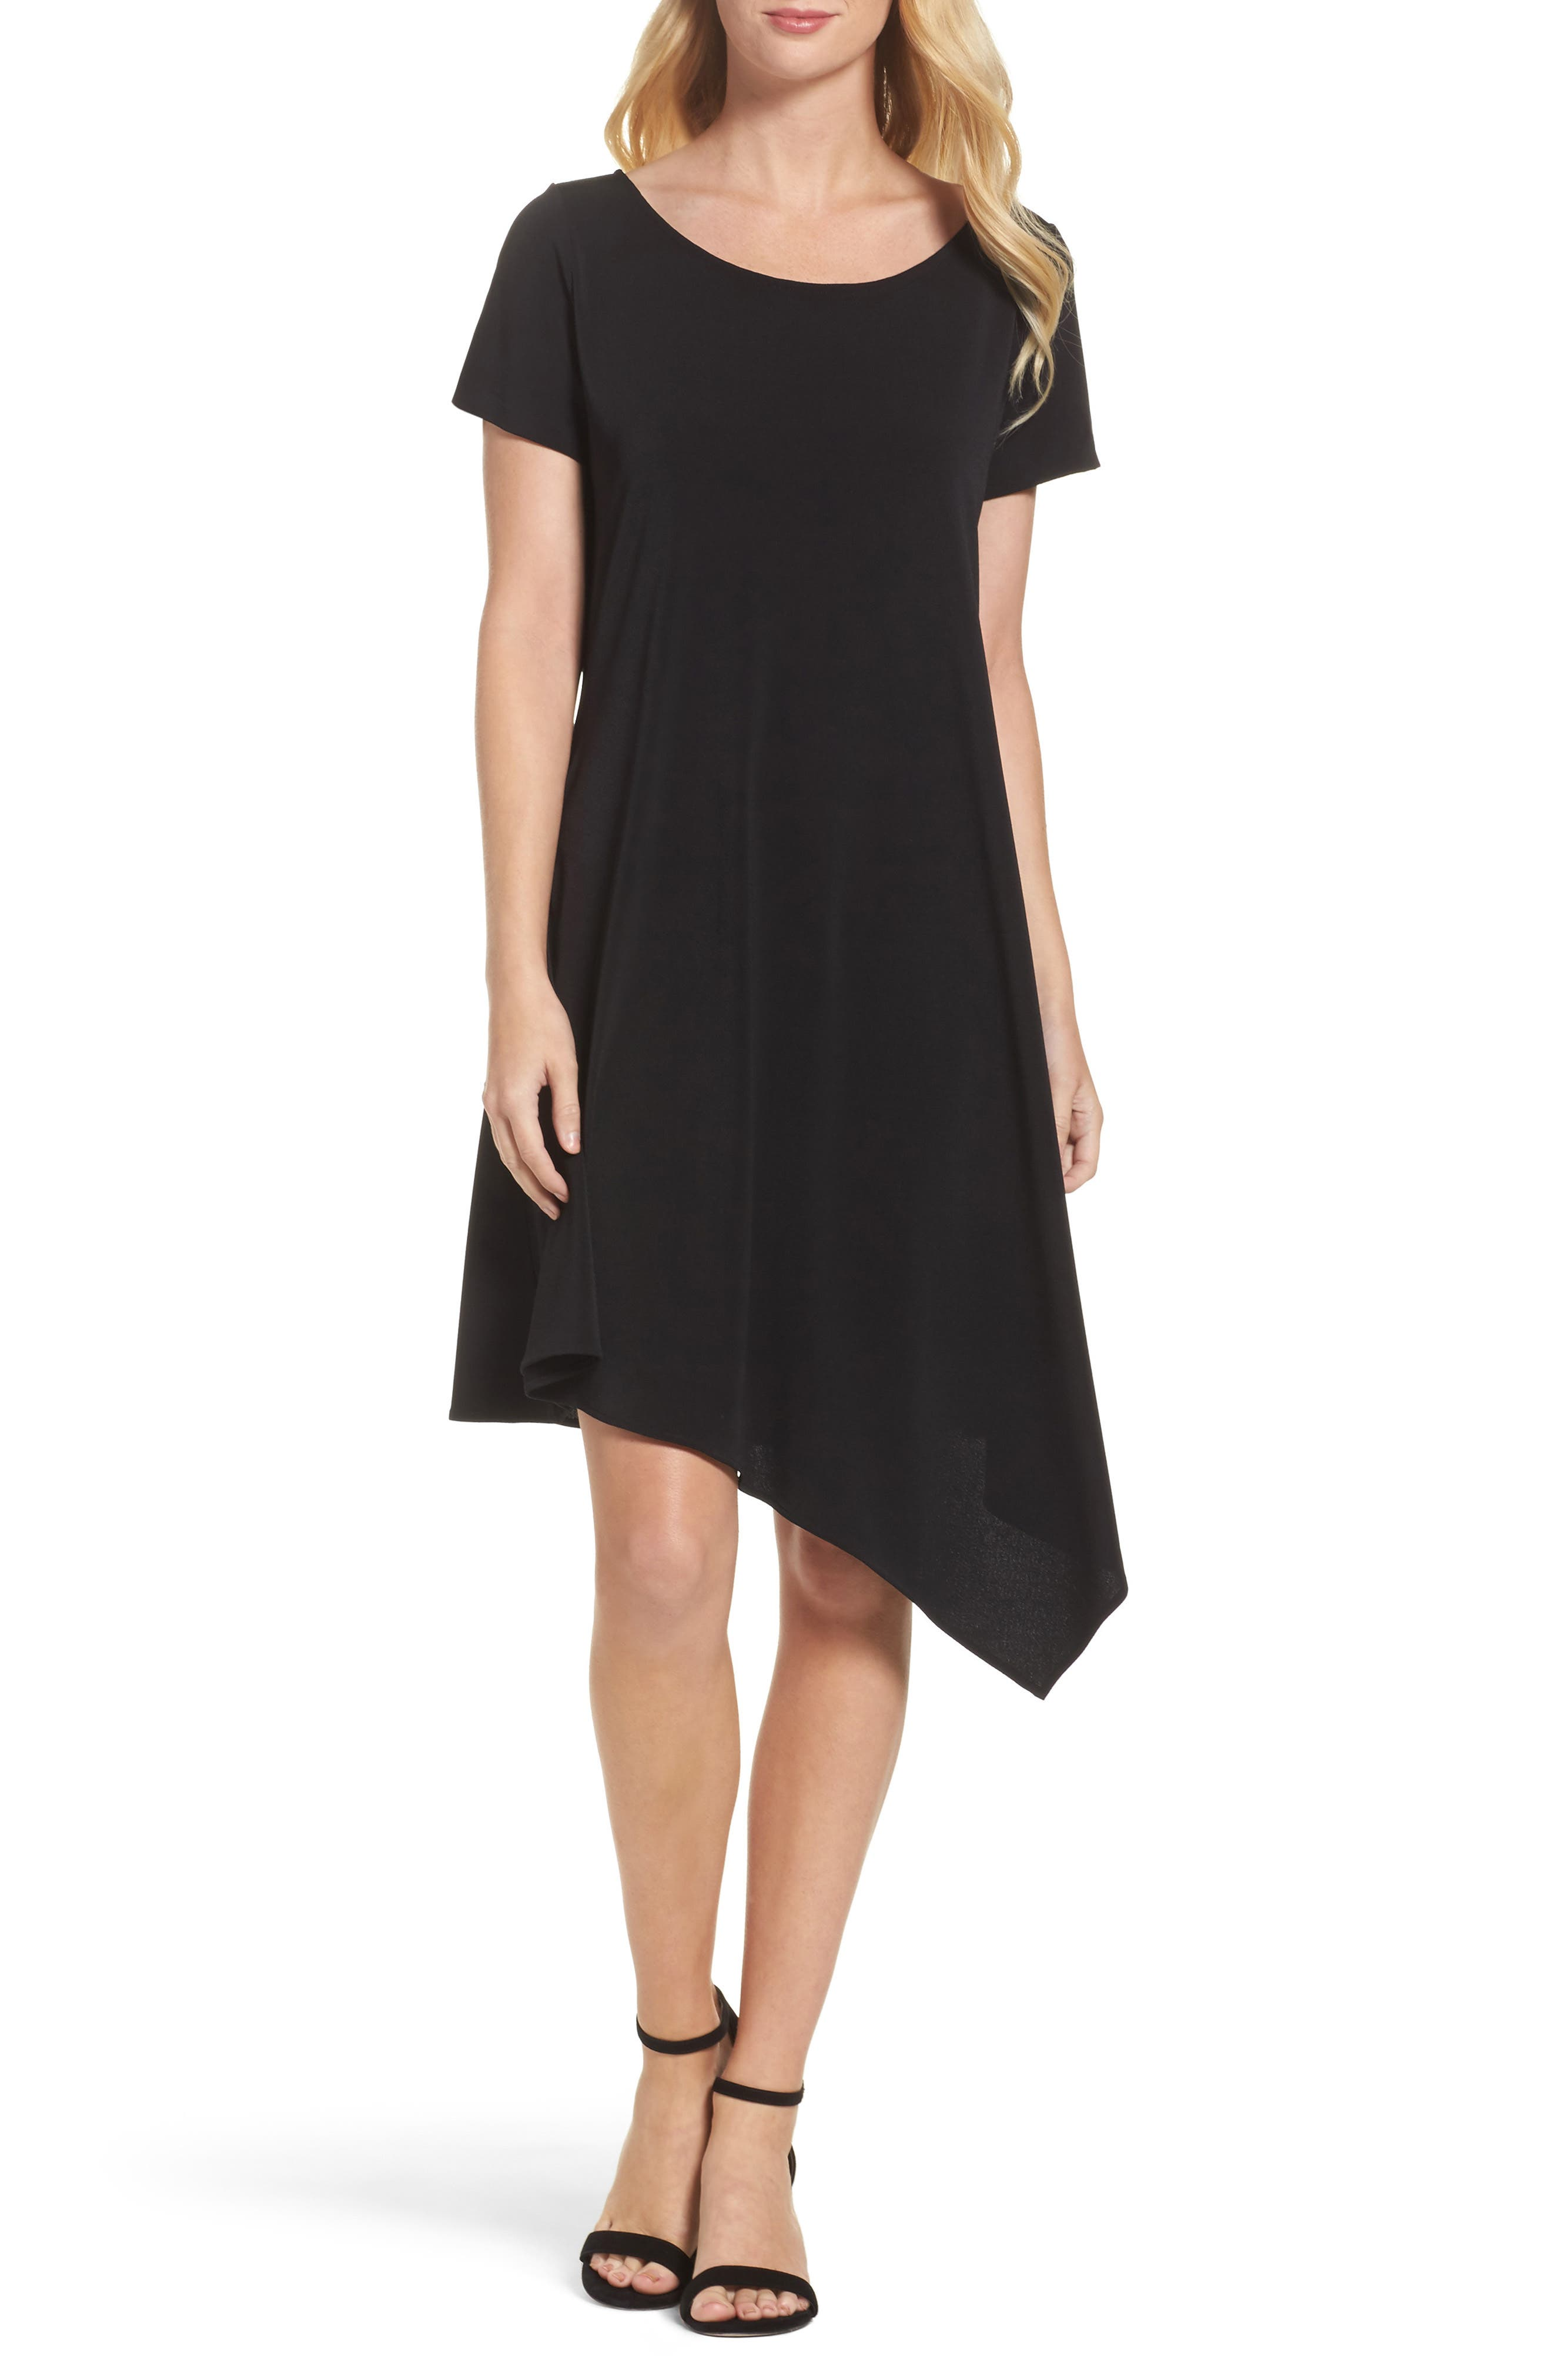 Darien Asymmetrical Dress,                             Main thumbnail 1, color,                             Black Crepe